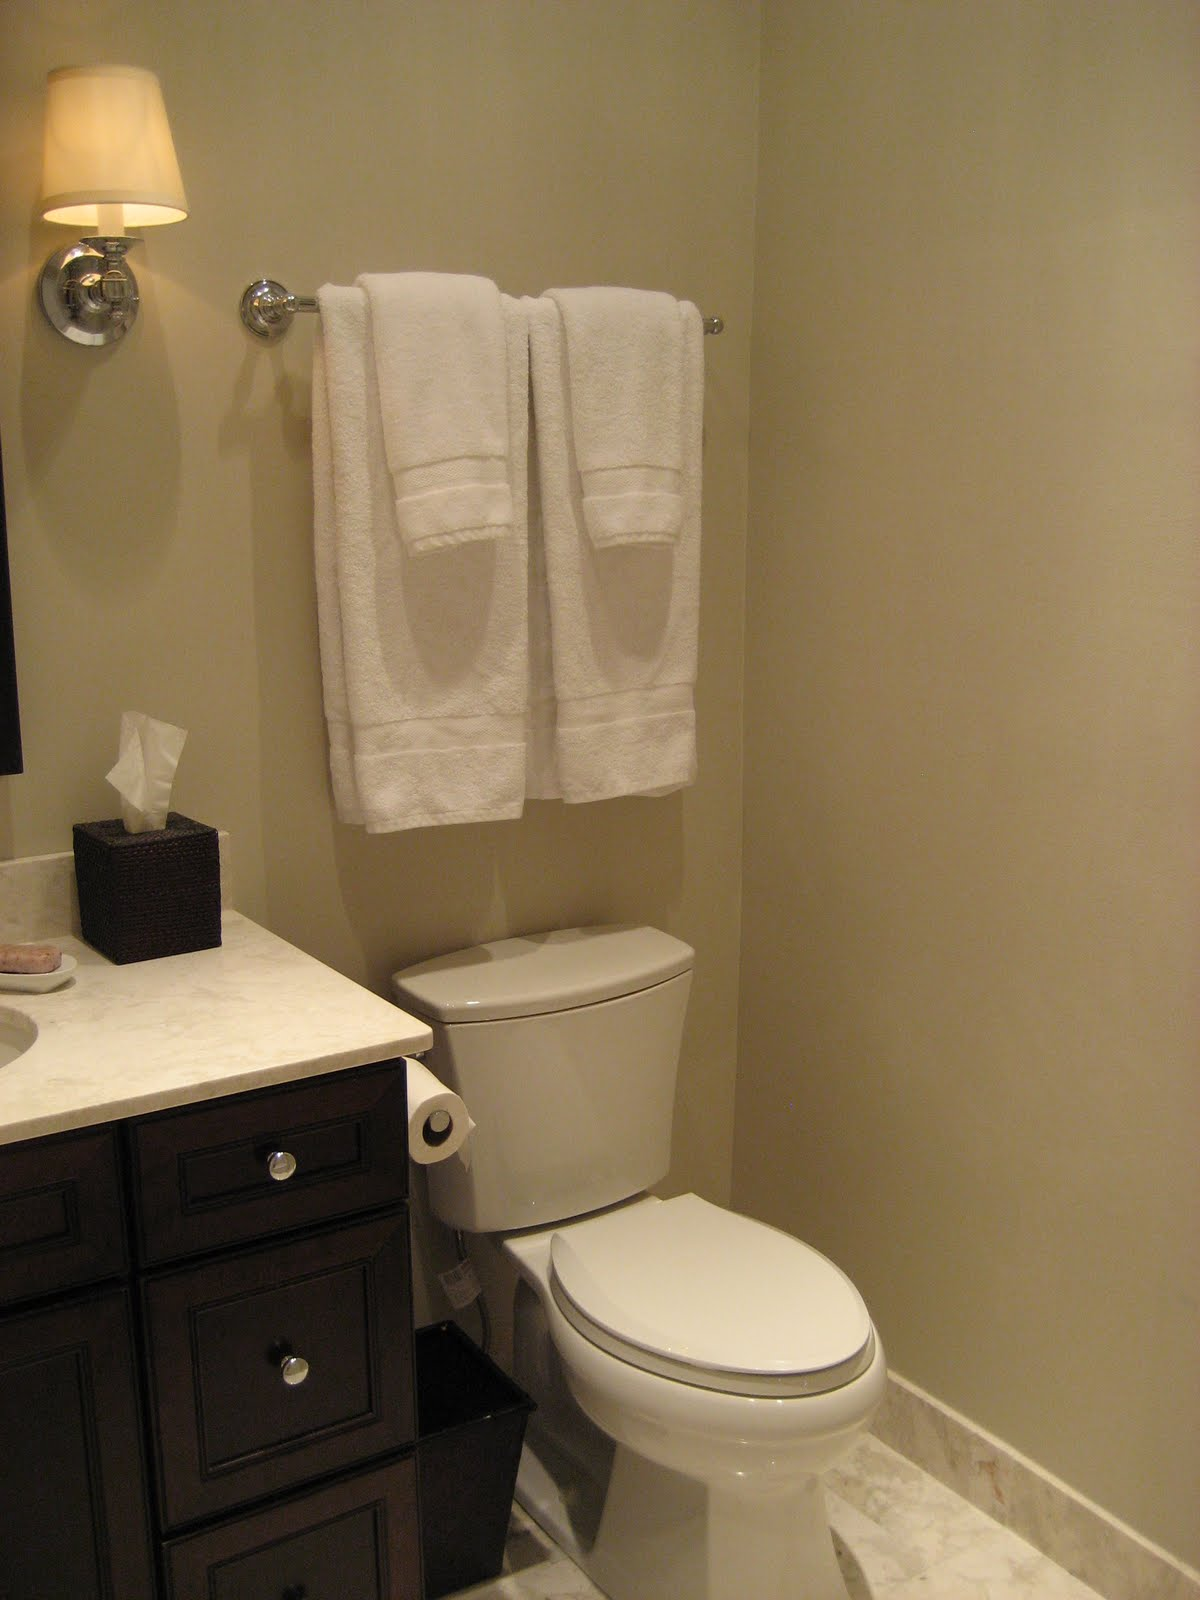 Bathroom Home Depot Bathrooms Remodeling Remodel Checklist: Home Depot Small Bathroom Vanities